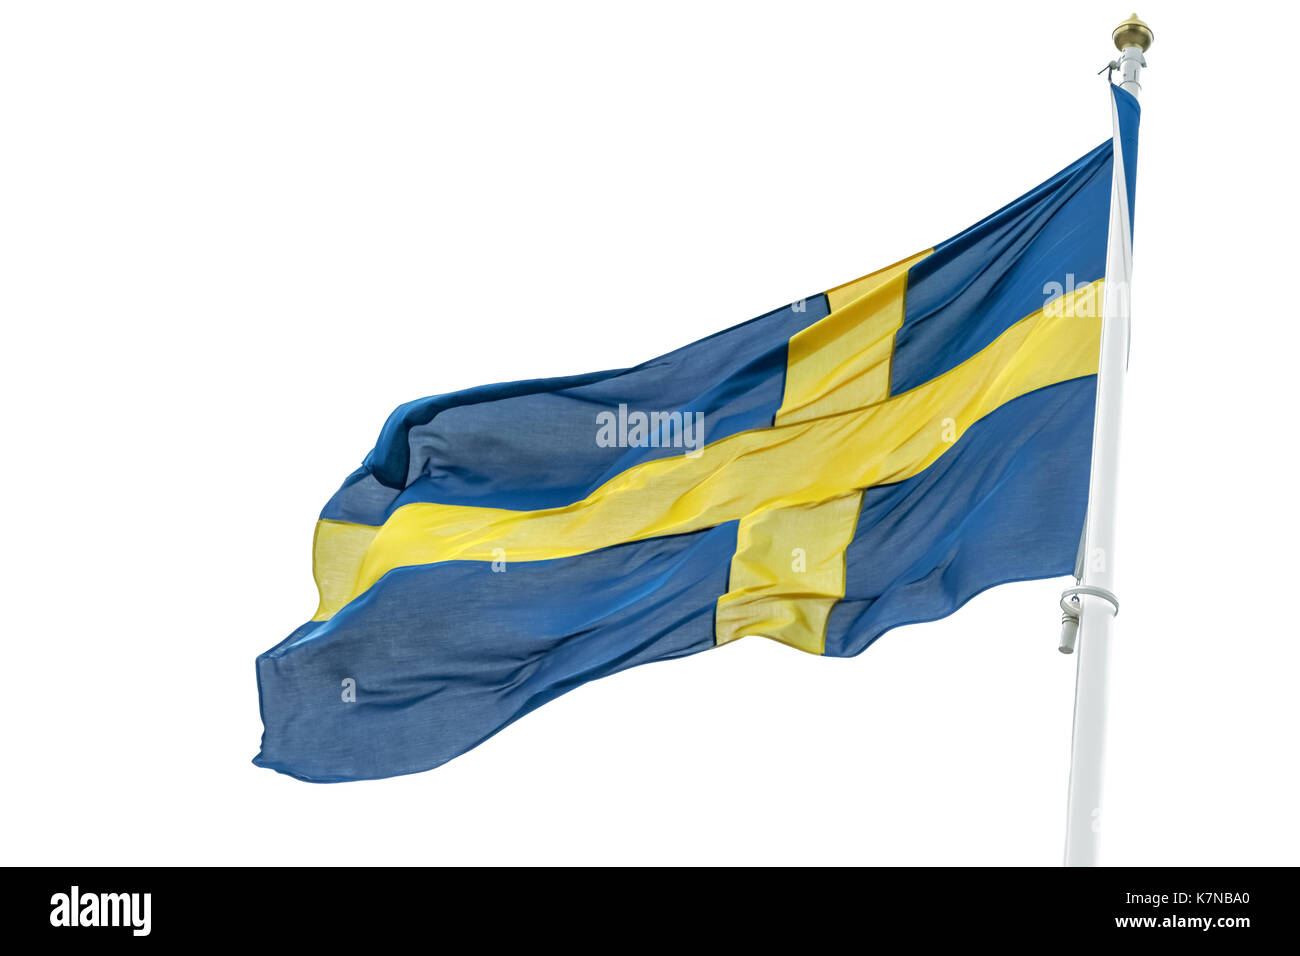 Flag of Sweden waving on a white background - Stock Image